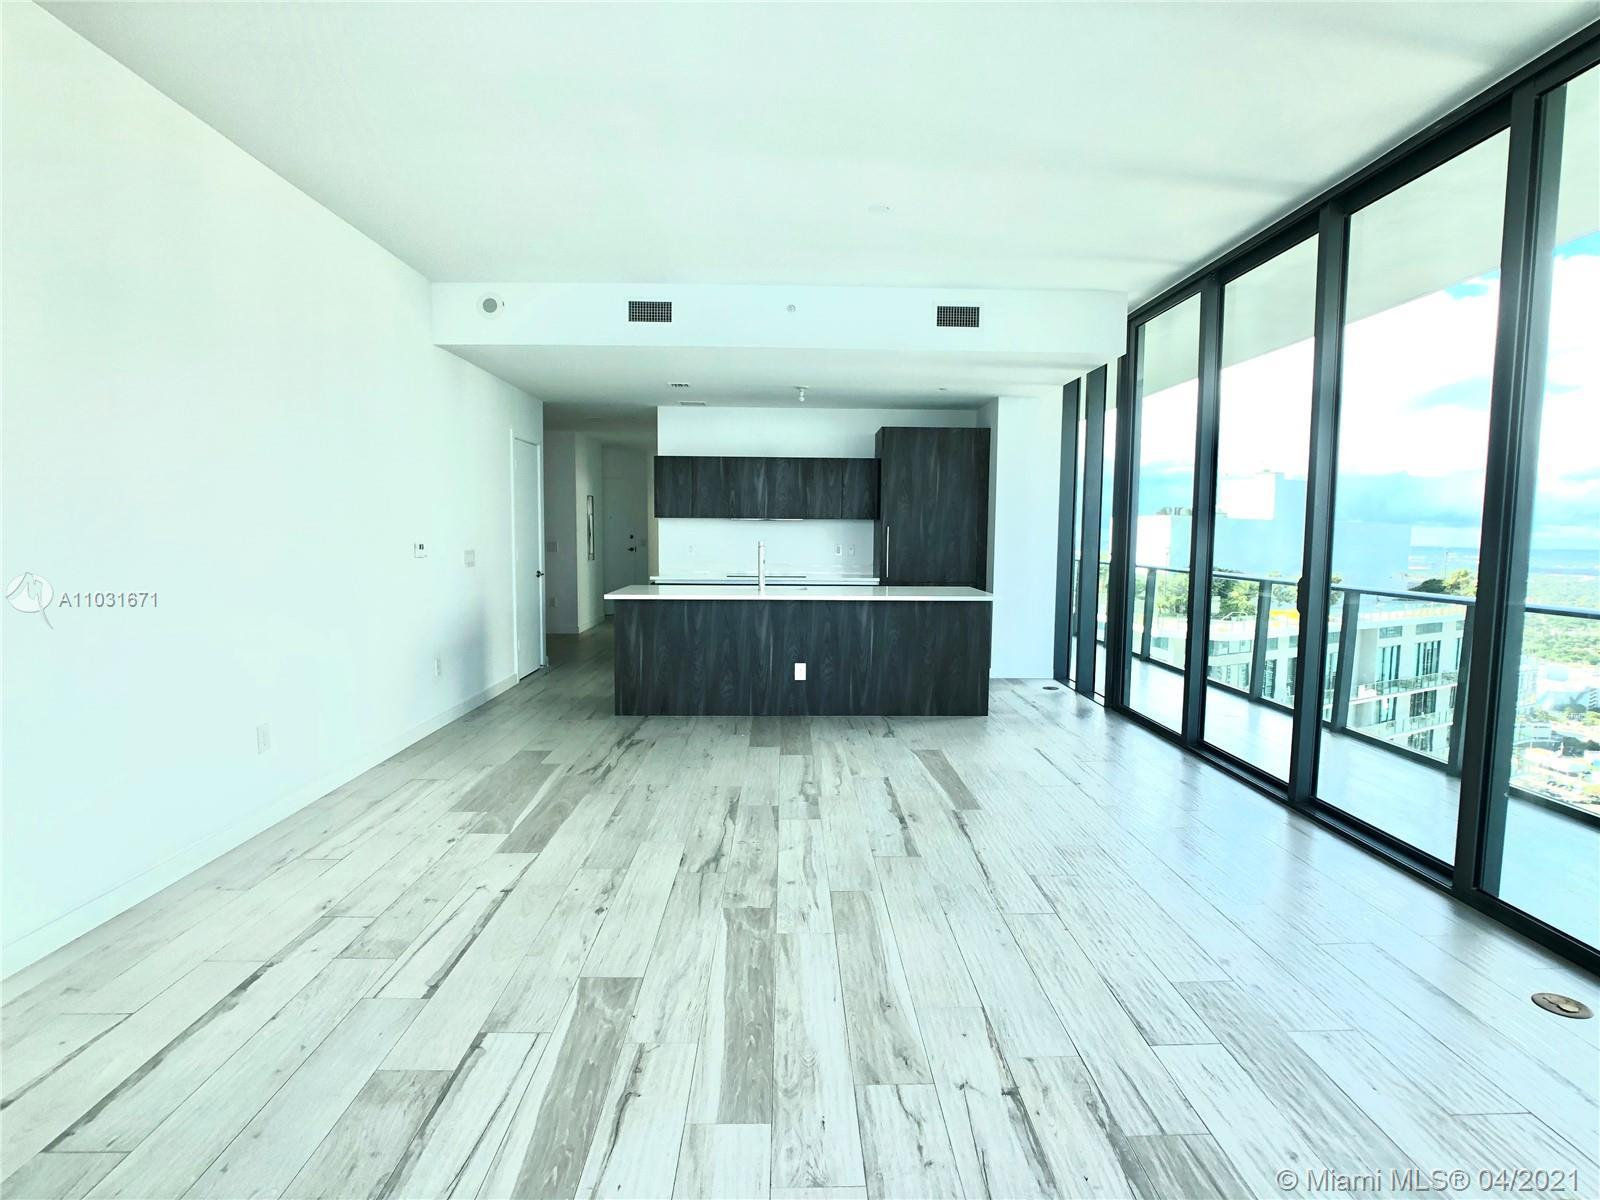 Breathtaking flow-through, 3 bedrooms & 3 bathrooms + Den